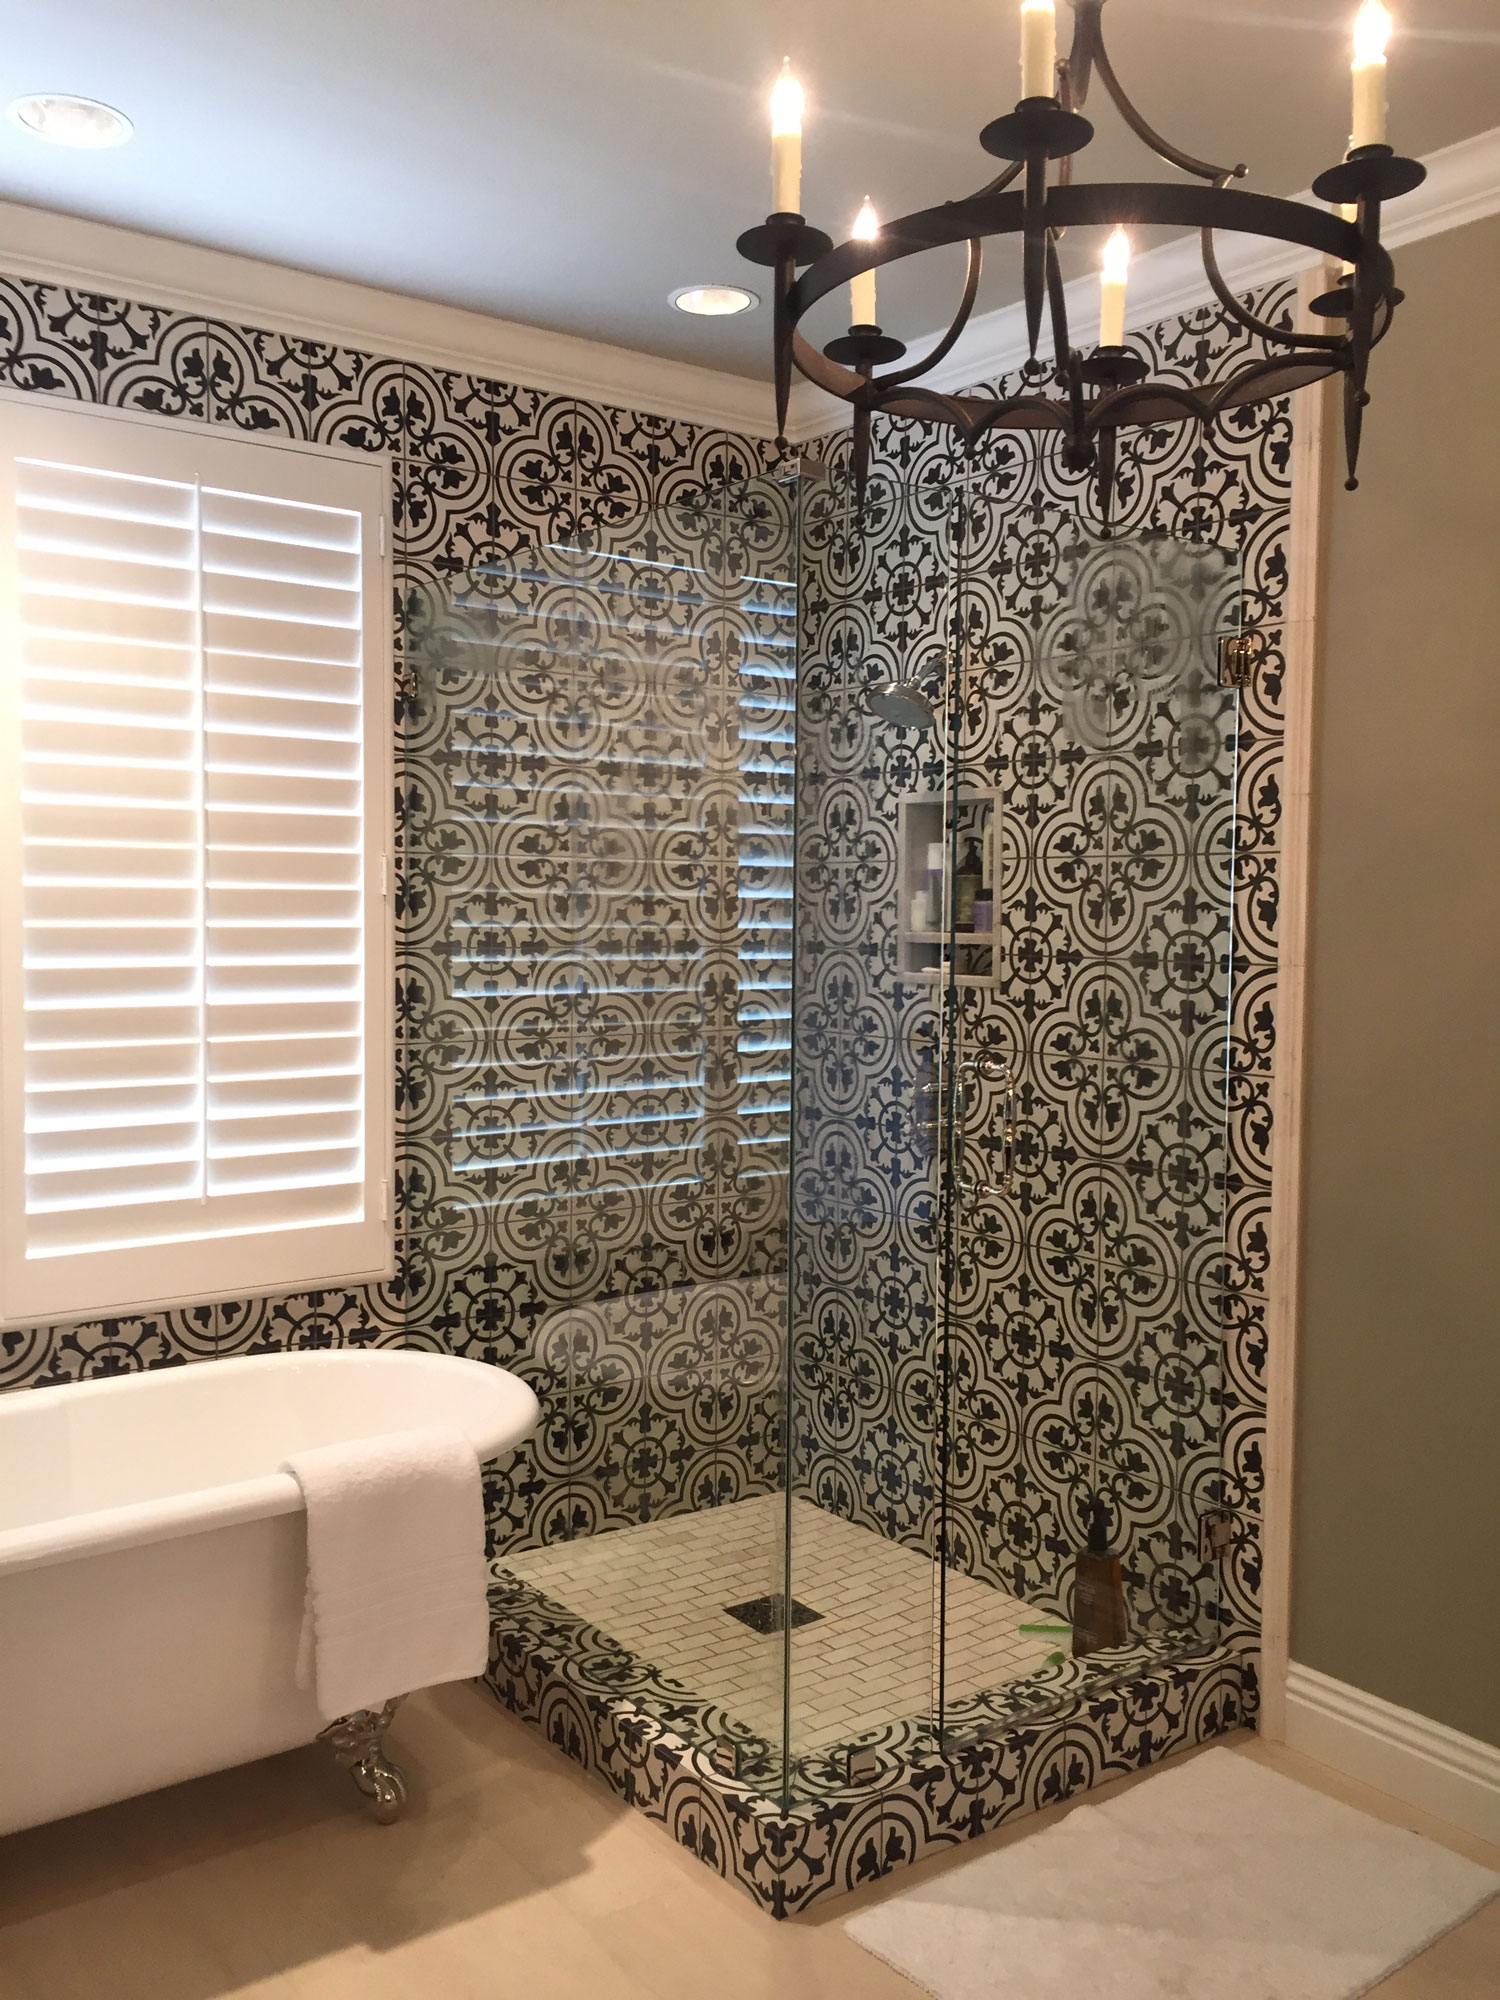 Granada Tile's Cluny Cement Tile In a San Clemente ...